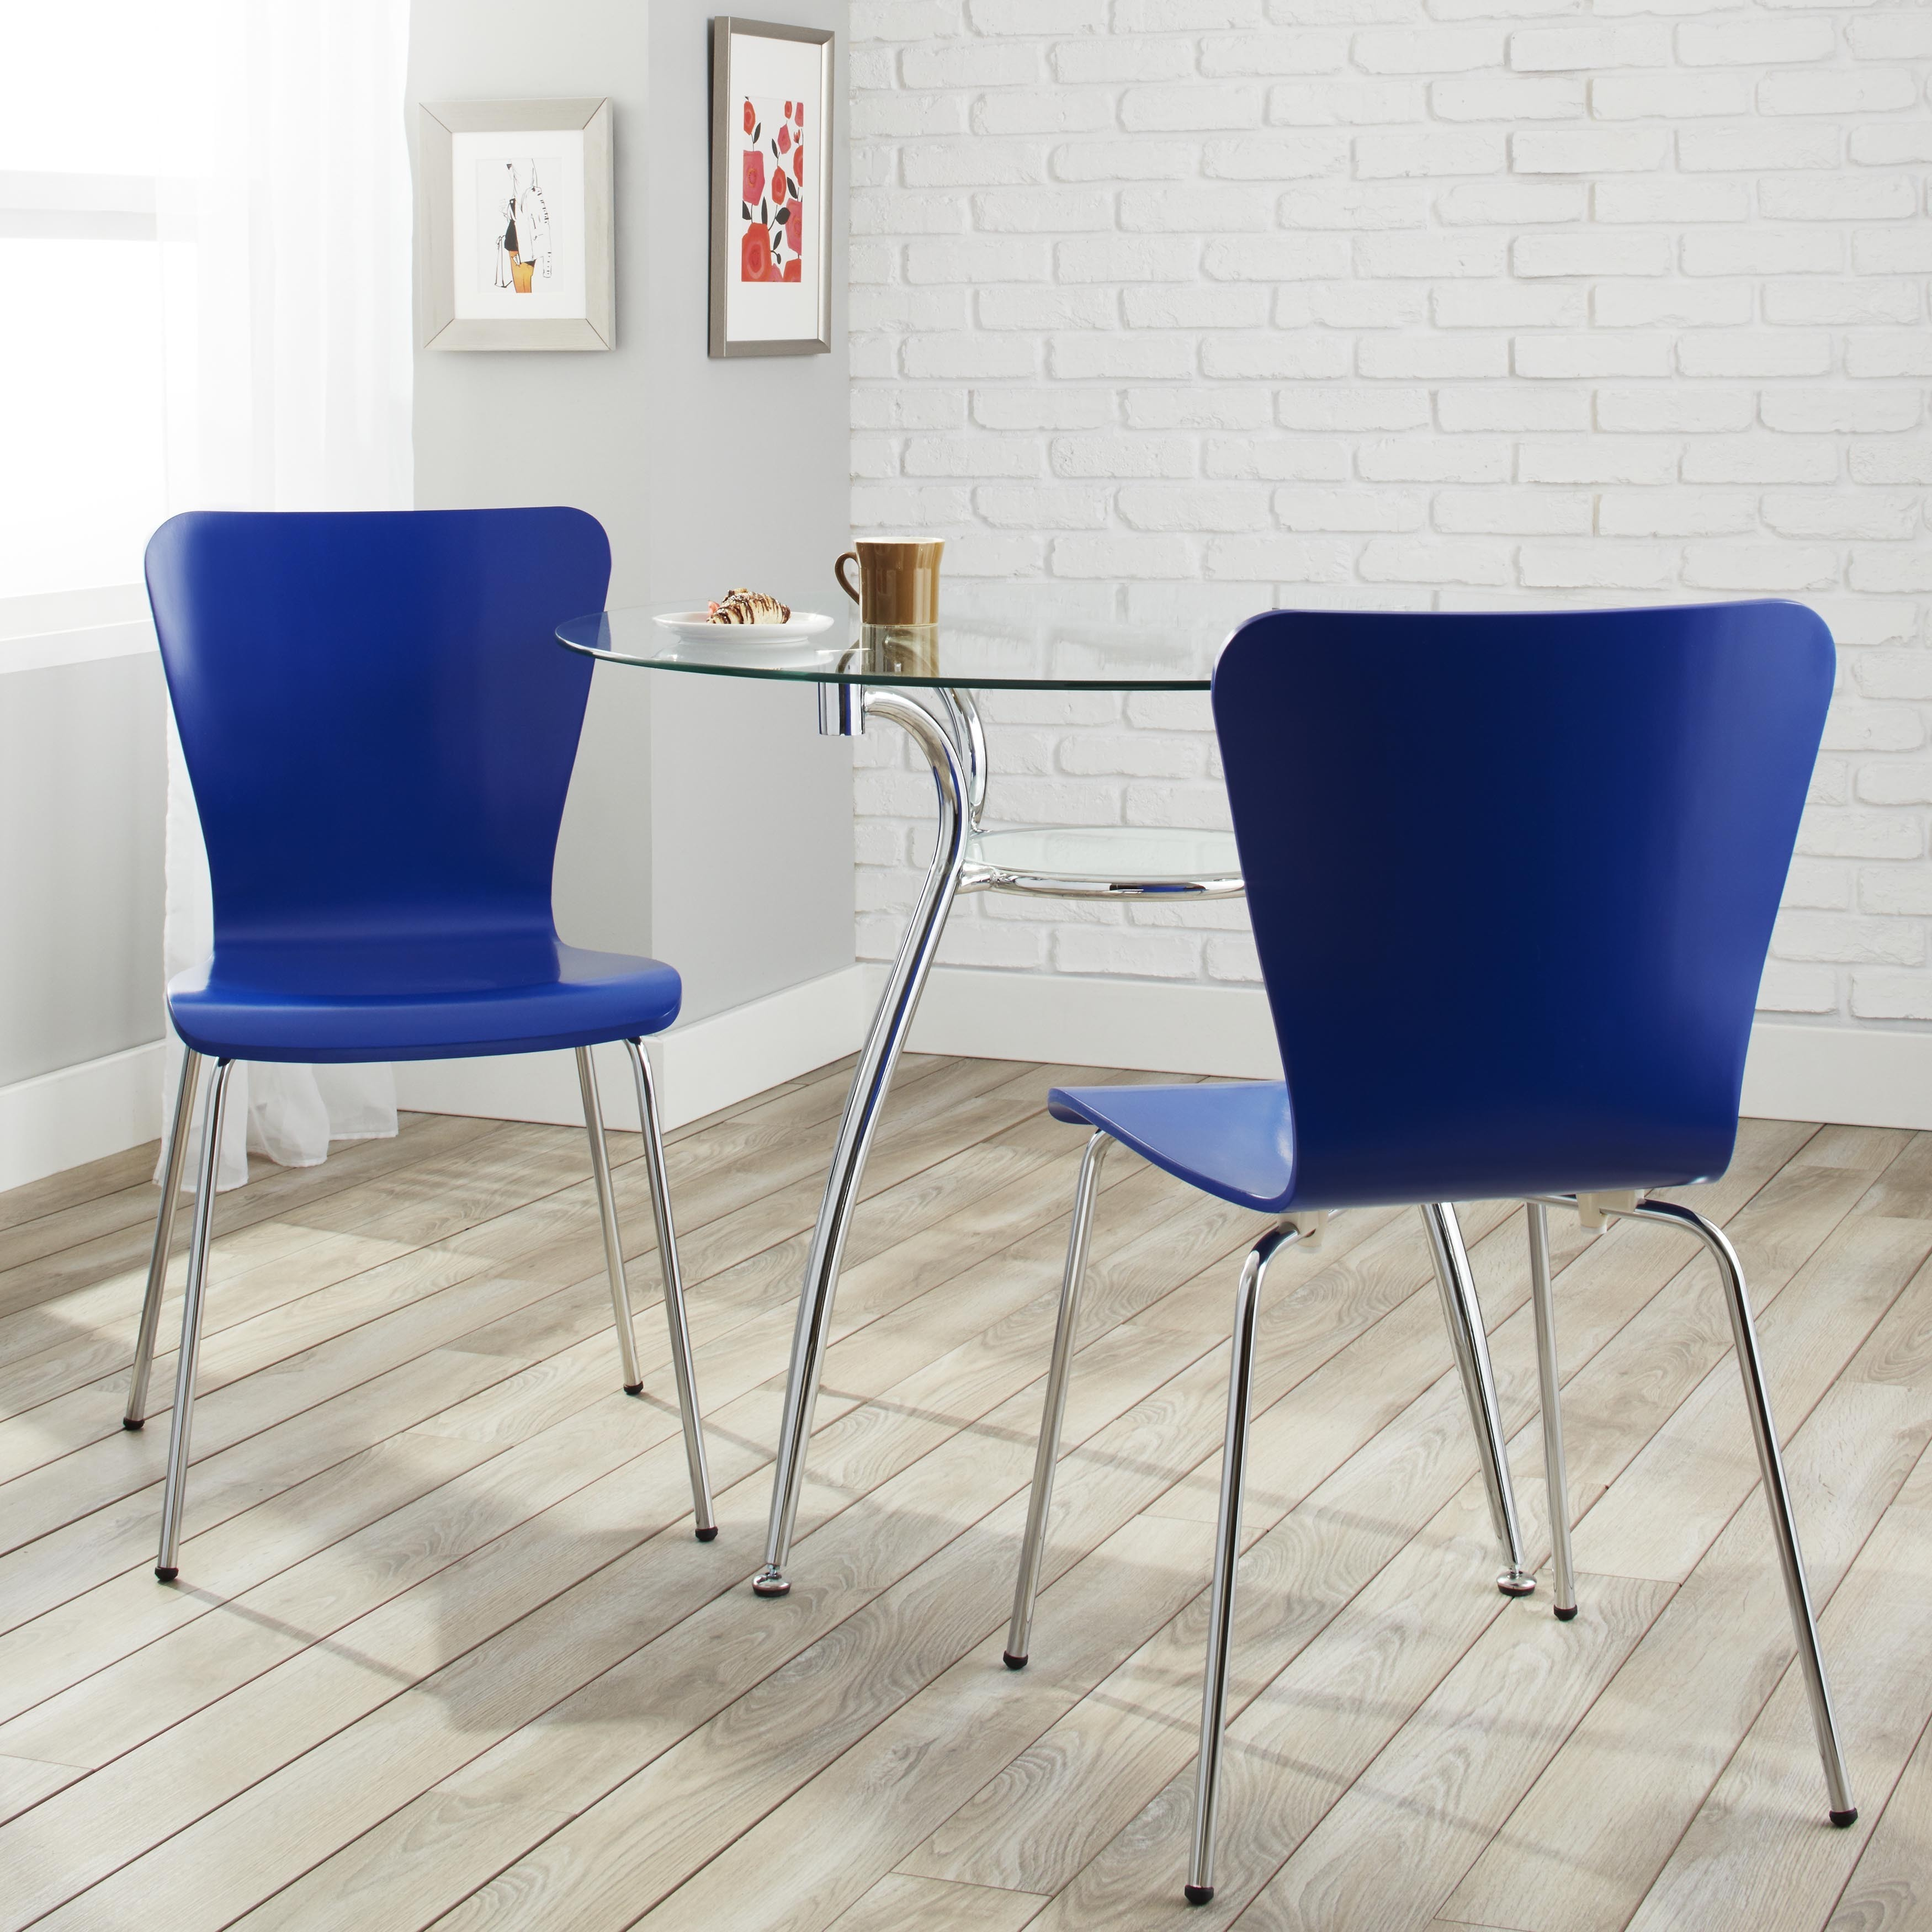 Shop Porch & Den Third Ward Erie Chairs (Set of 2) - Free Shipping ...